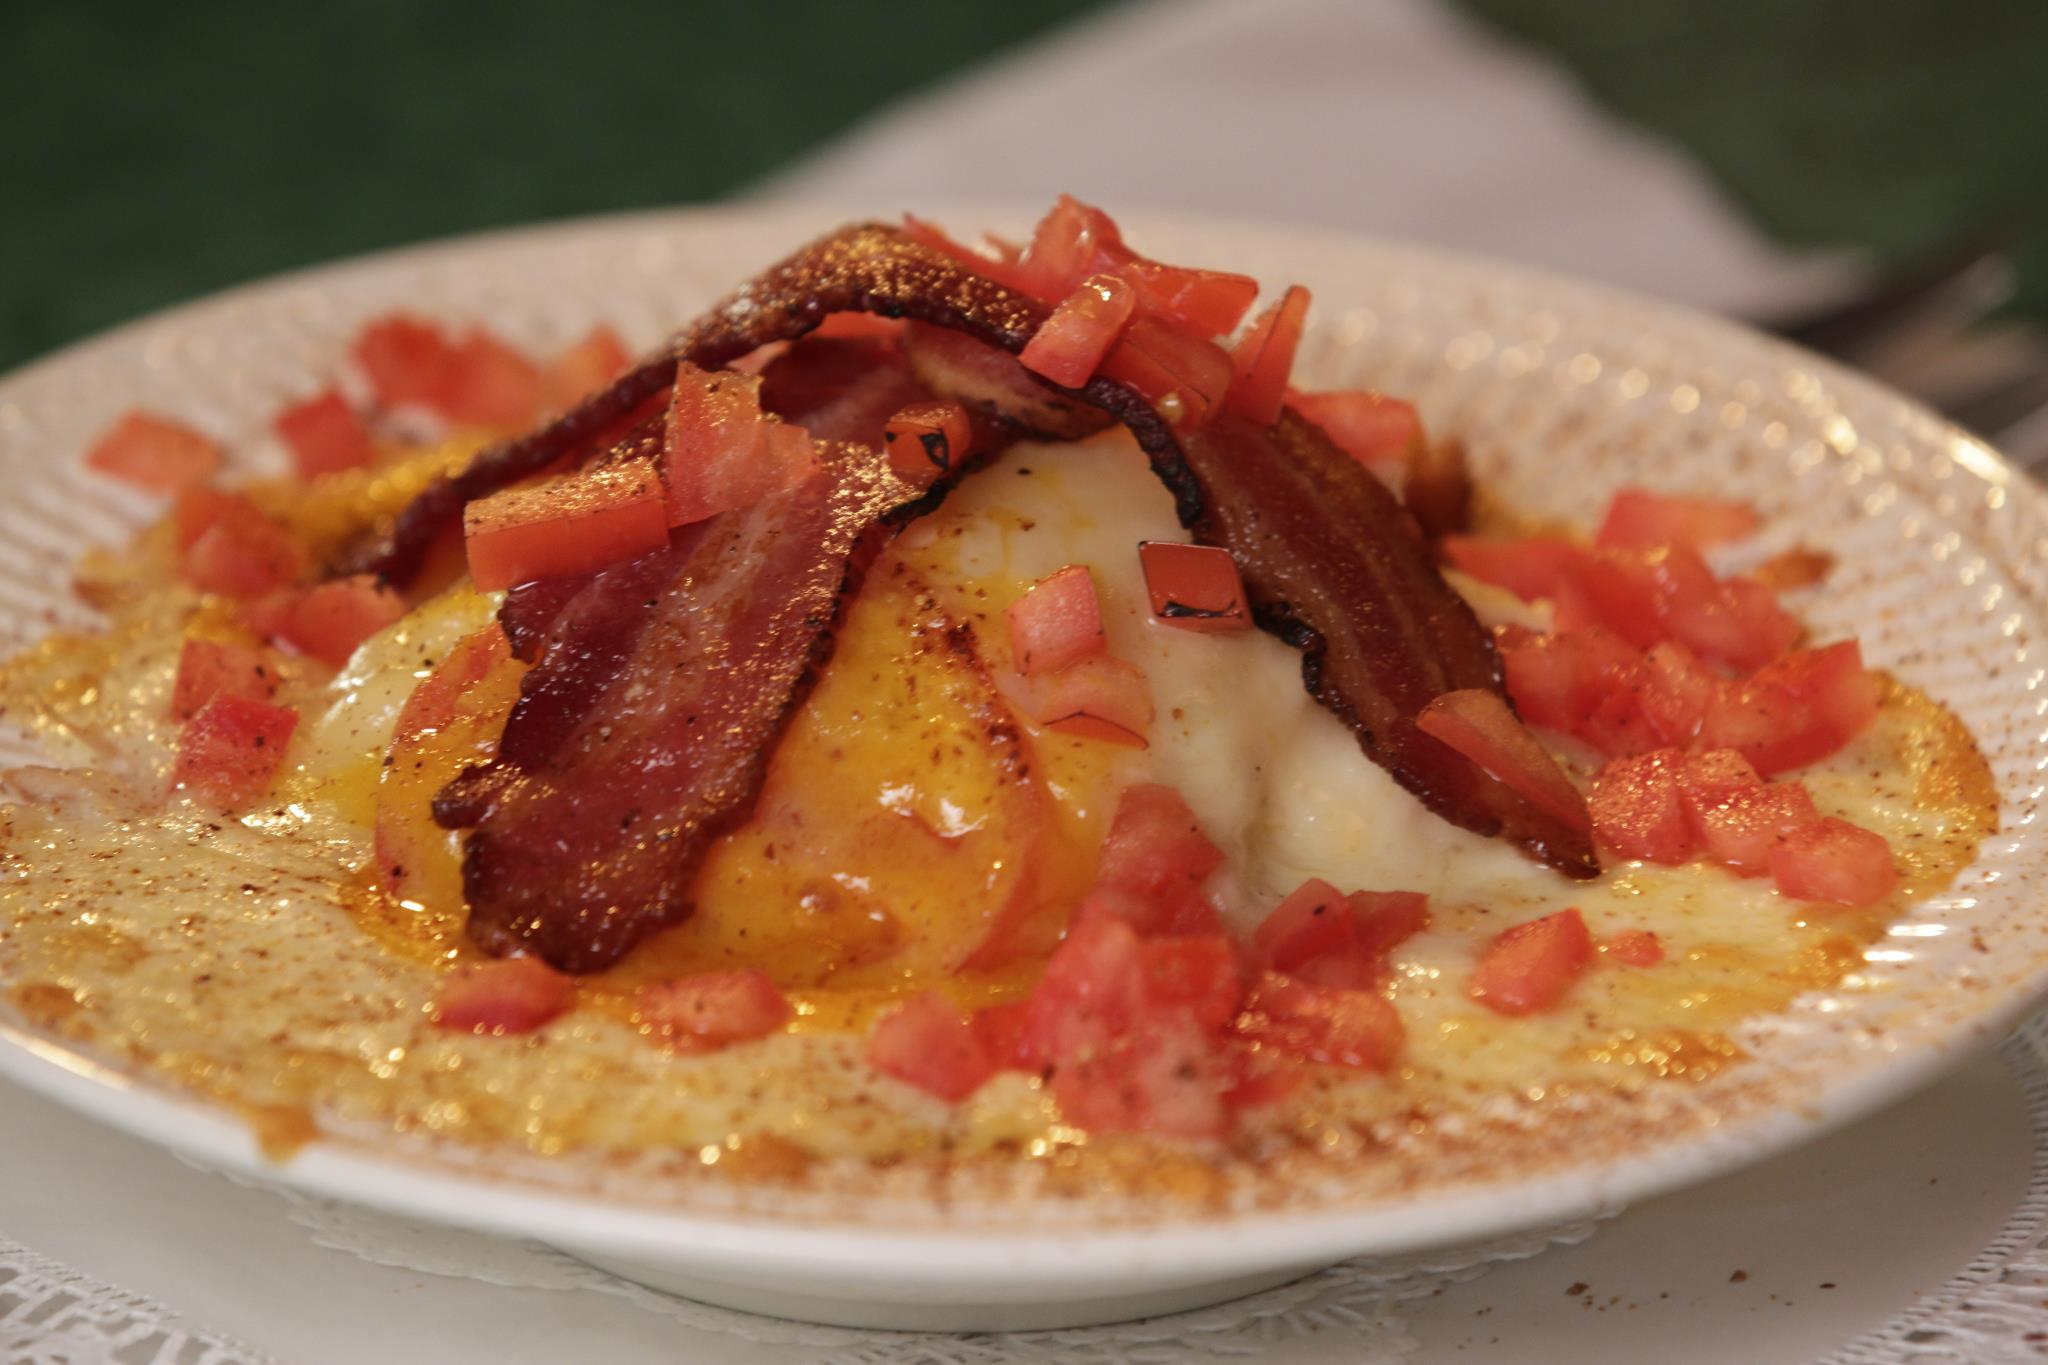 Lynn Winter's Hot Brown interpretation from her now-closed Paradise Cafe